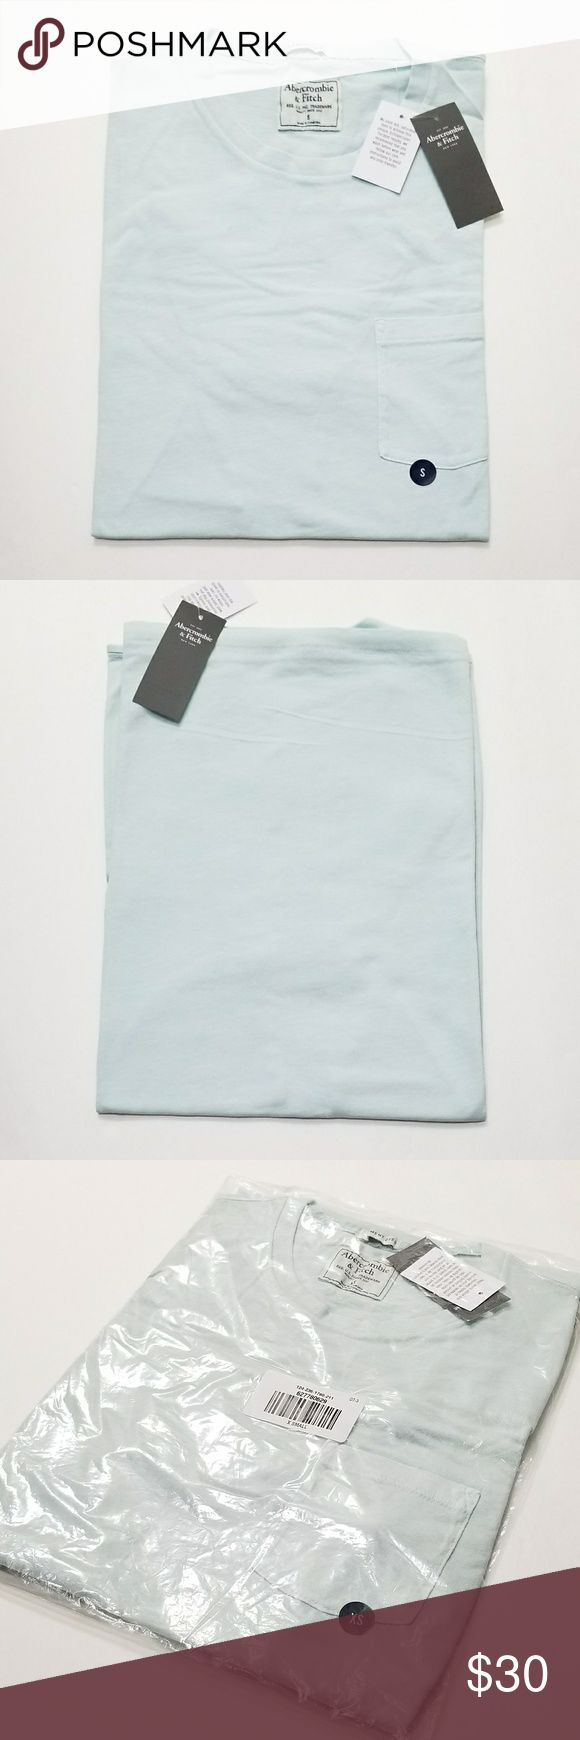 👕Abercrombie And Fitch Light Blue T-shirt Perfect Valentine's Gift Brand New Light Blue Mens T-shirt Carry 3 different Sizes XS, S and XL only. No flaws All Sales Final. Raise Question Before Purchase. Price is for one piece. Please bundle or reasonable offer. Free random gift! Fast Shipping! Abercrombie & Fitch Shirts Tees - Short Sleeve